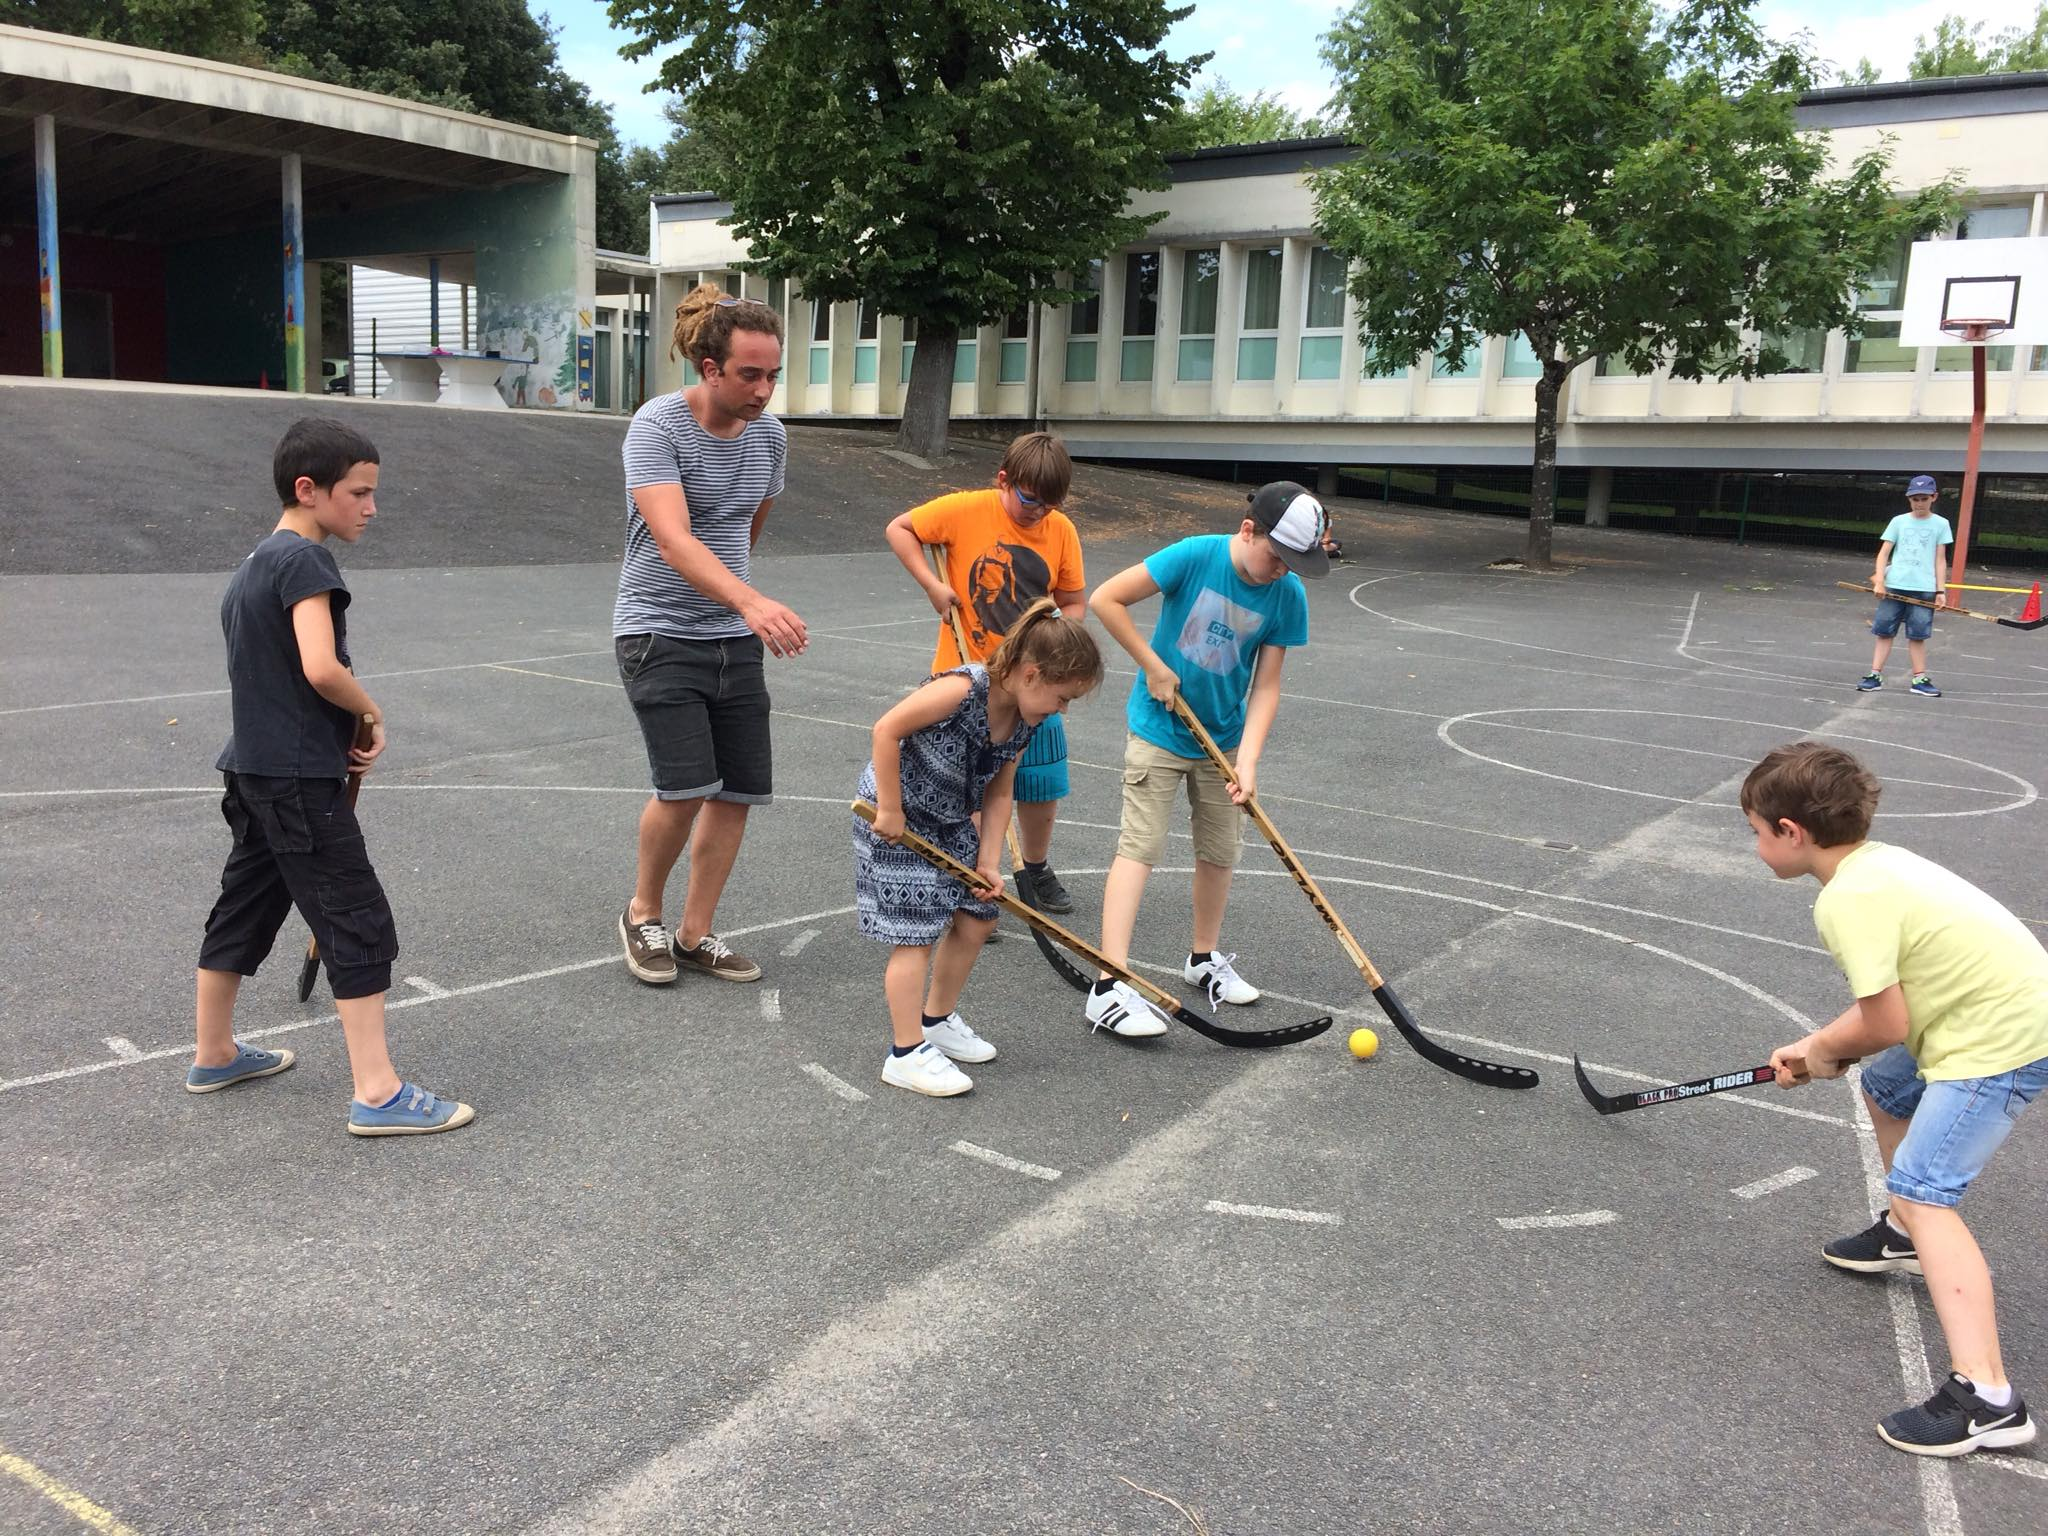 TAP et sport: hockey